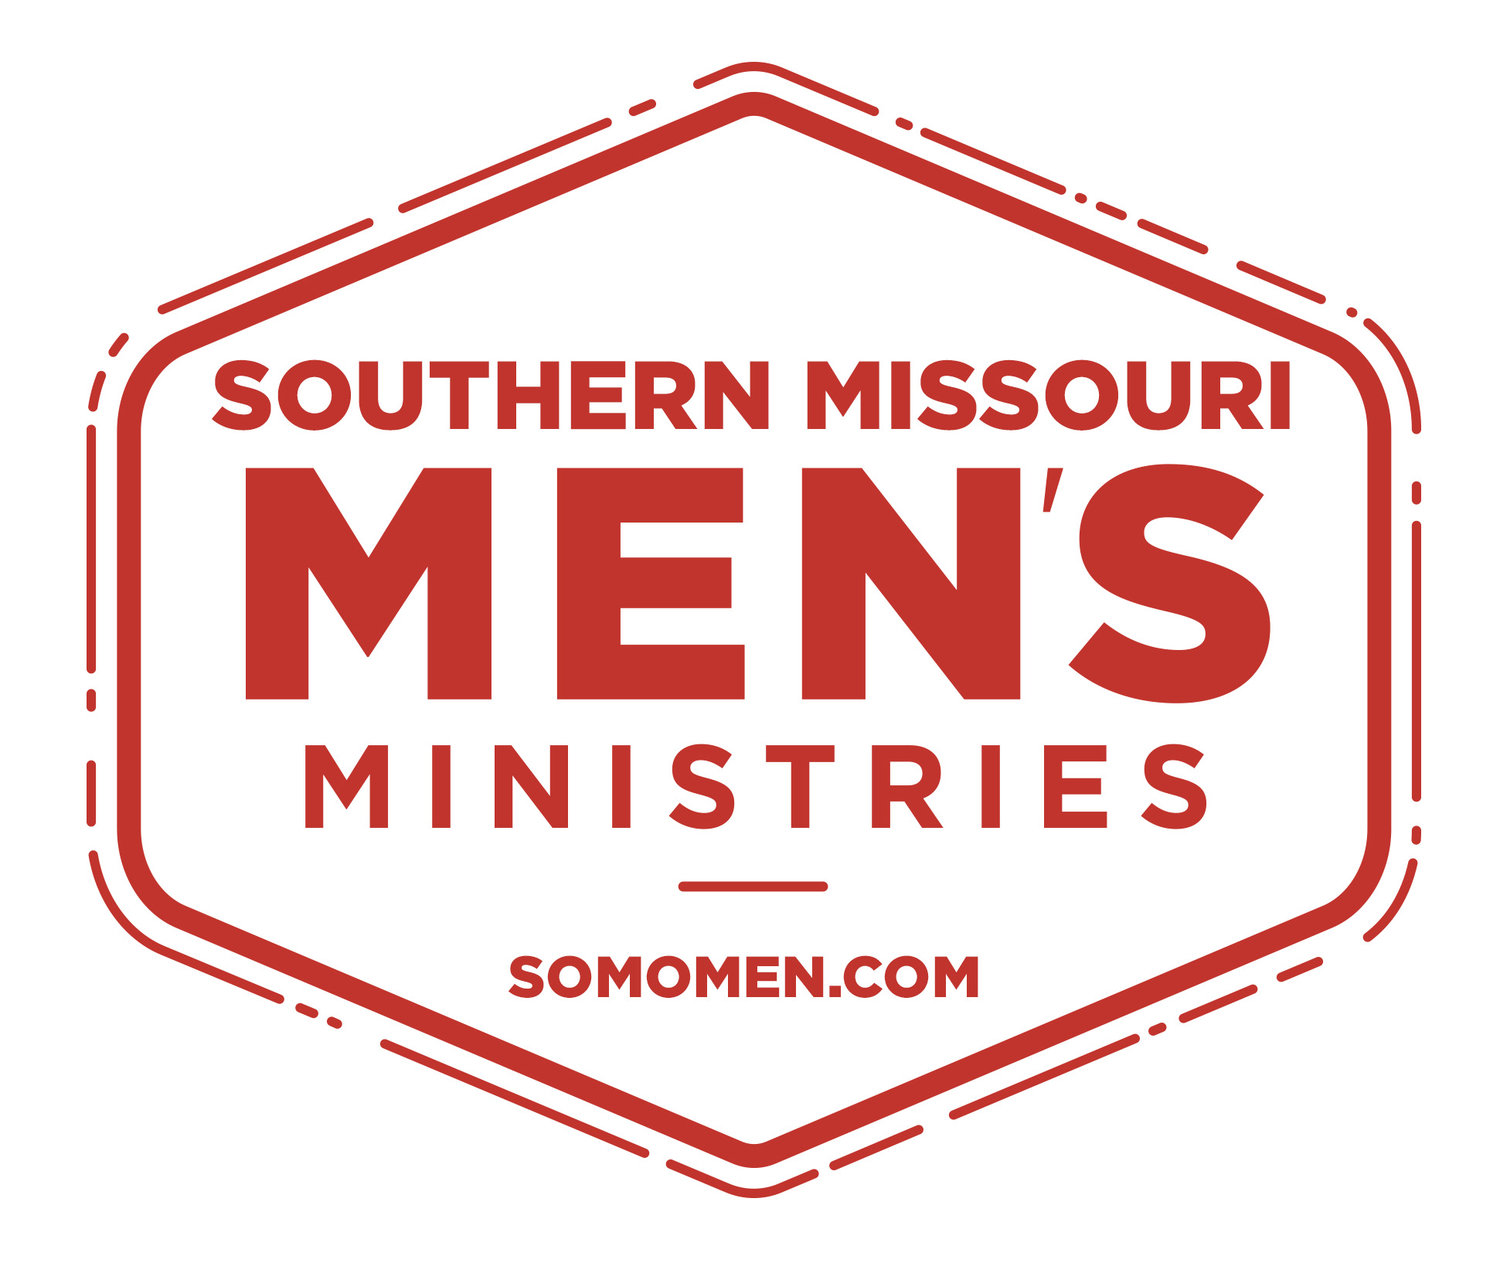 Southern Missouri Men's Ministries